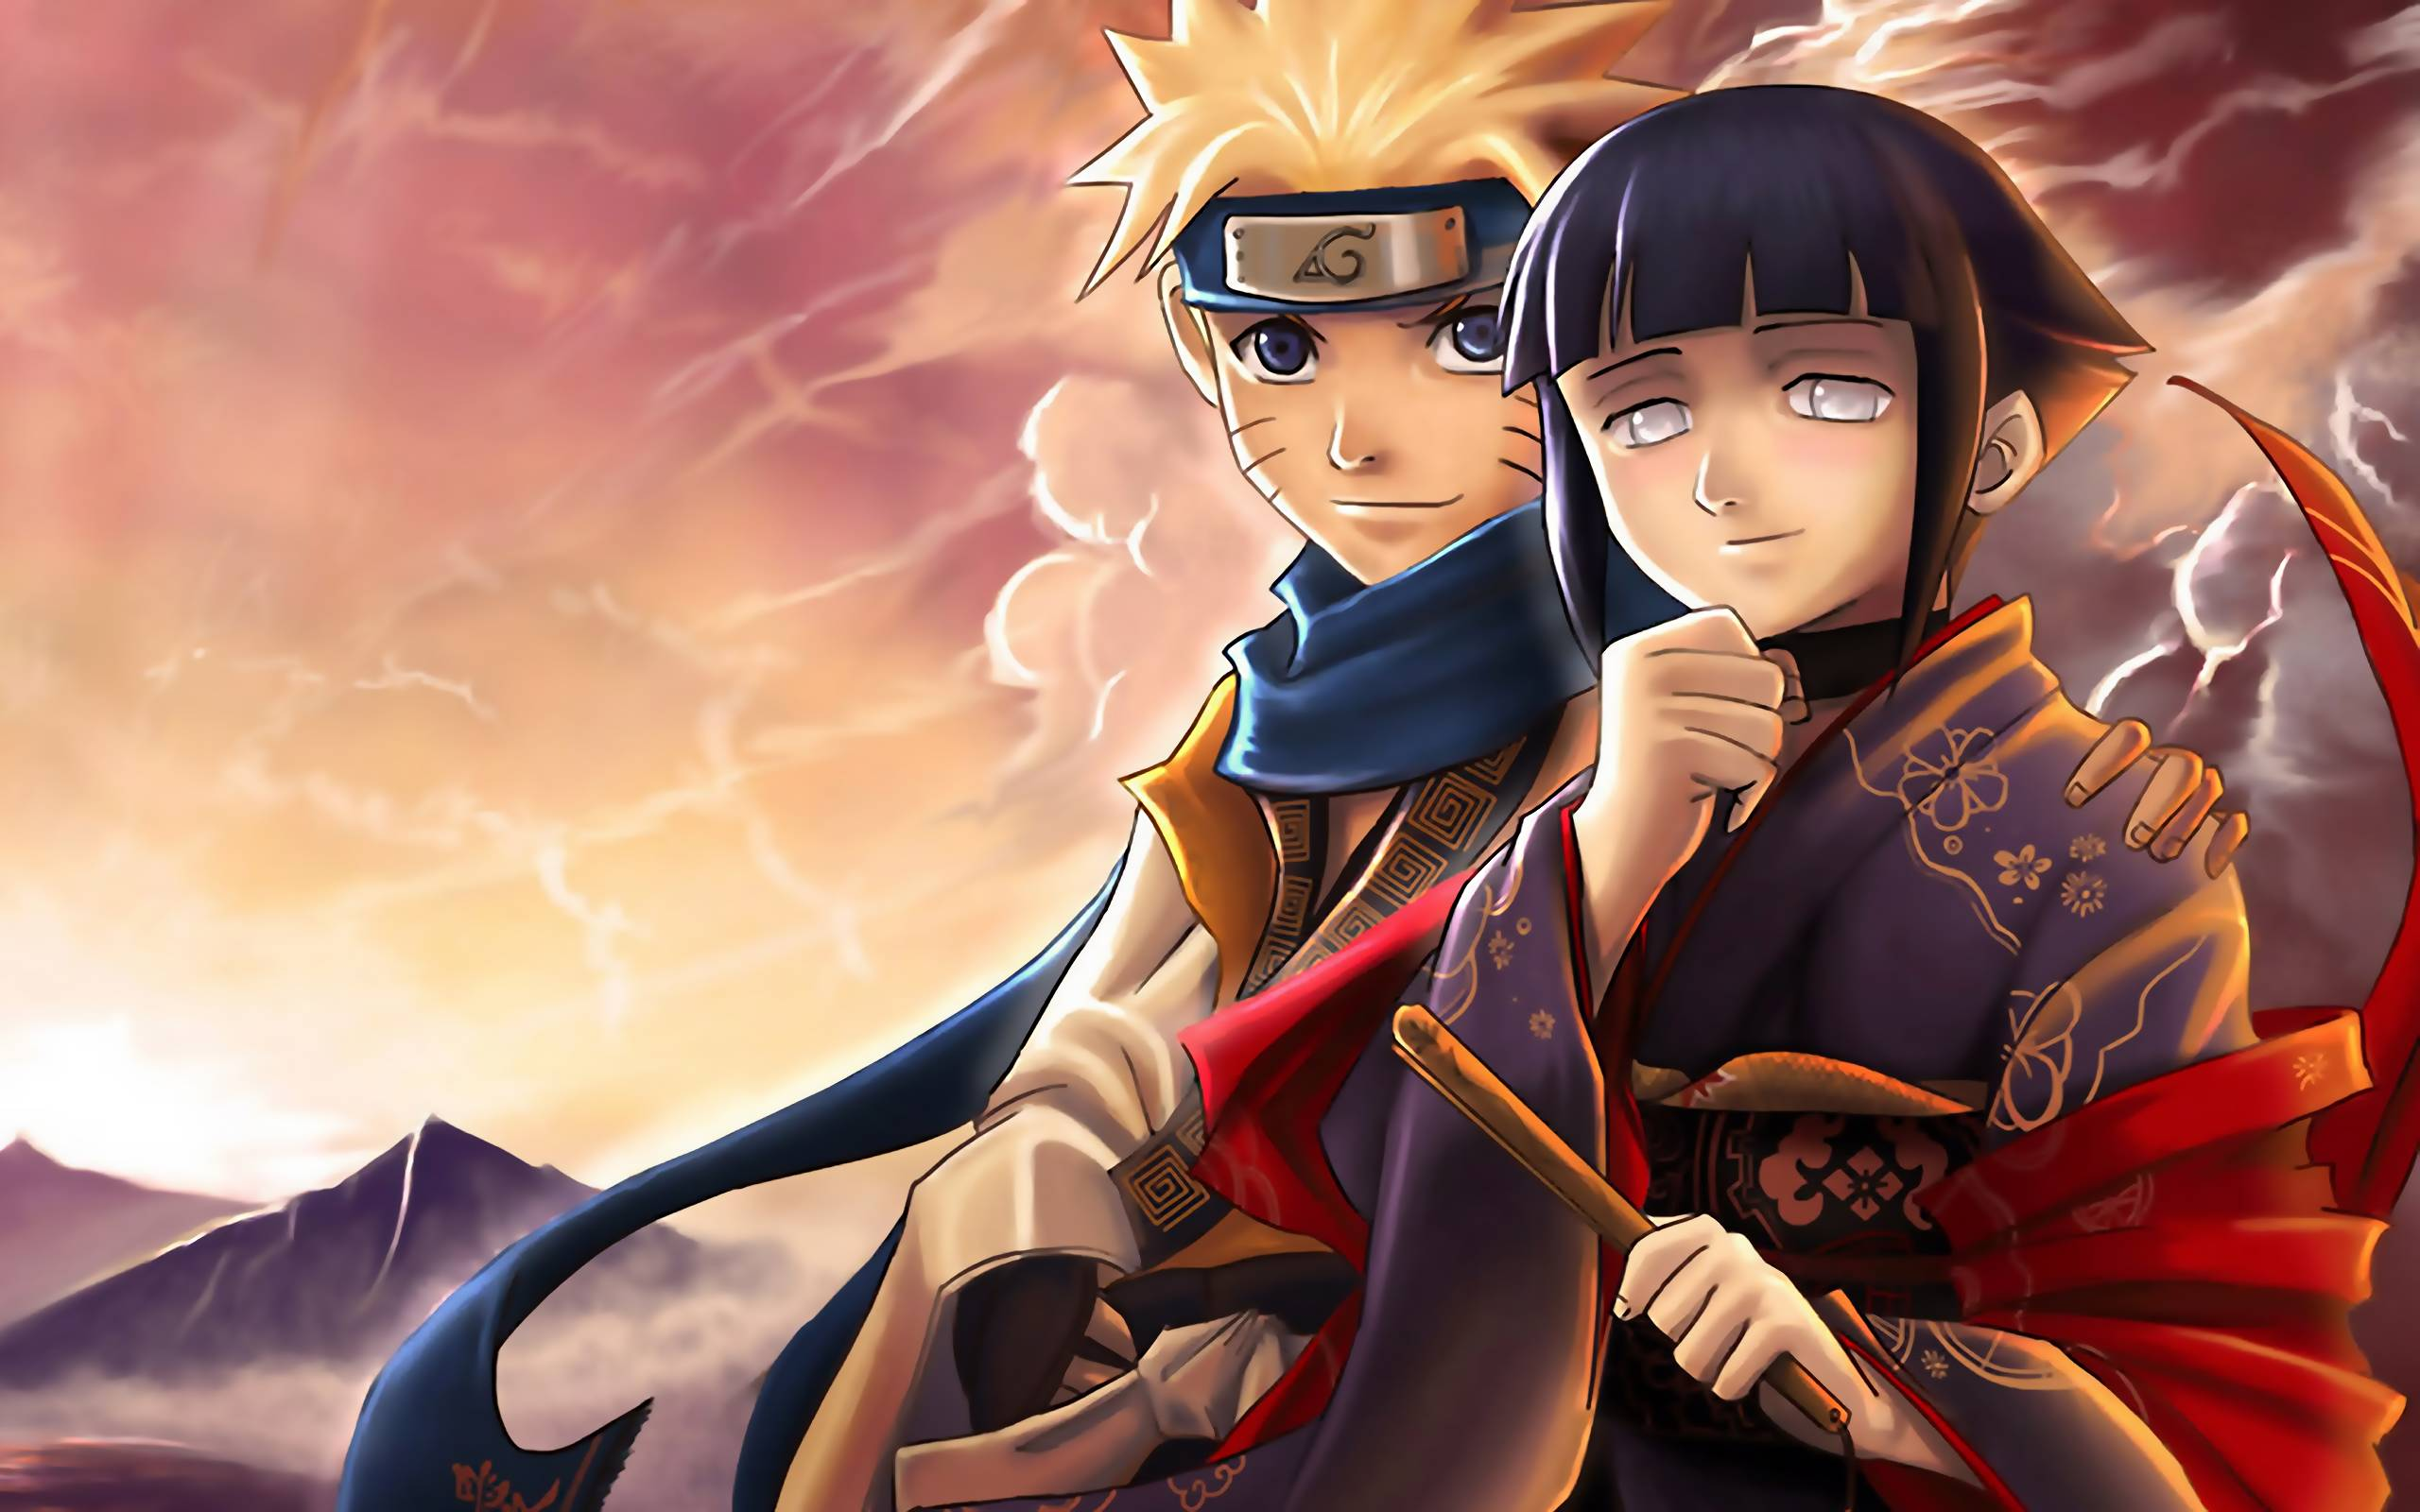 cool wallpapers images photos download Cool Naruto 2560x1600